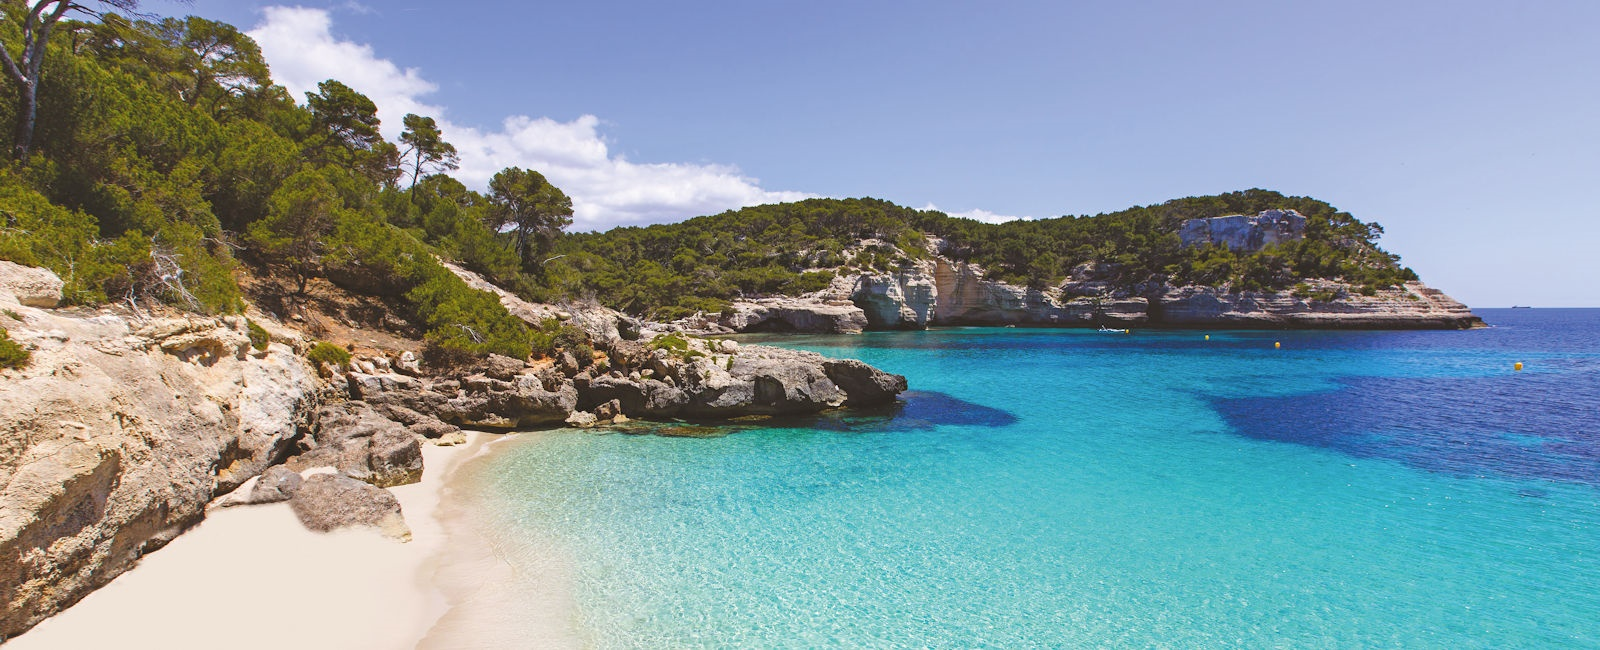 Luxury Menorca Holidays